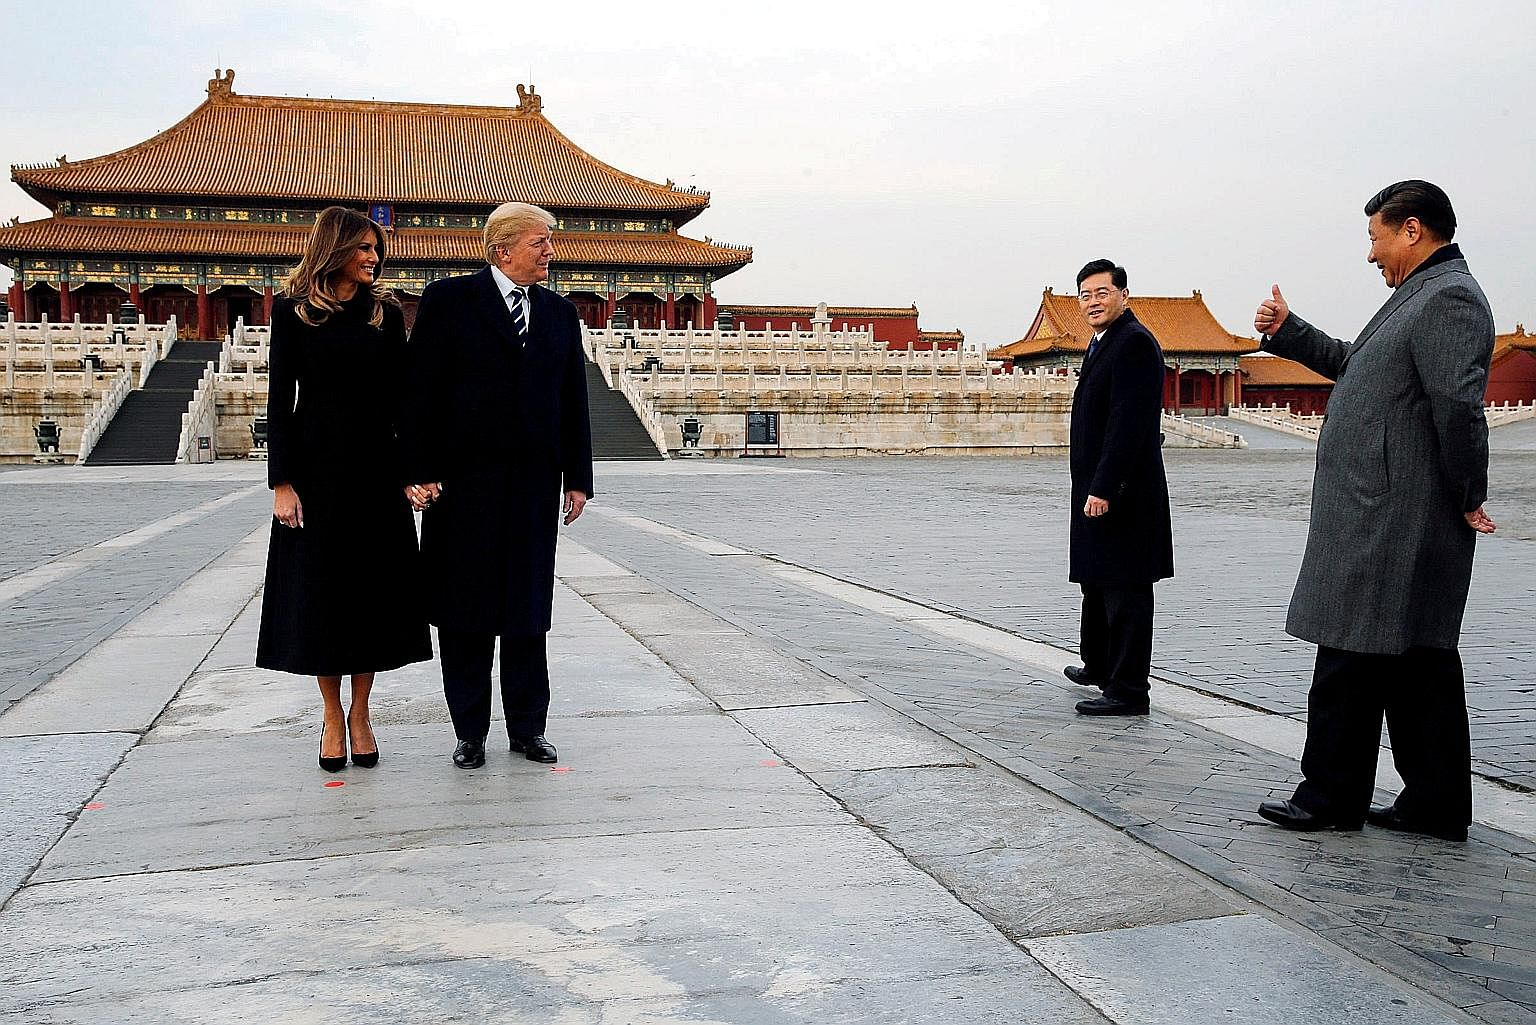 United States President Donald Trump and First Lady Melania Trump visiting the Forbidden City with Chinese President Xi Jinping in Beijing, China, last week. Mr Trump has not simply surrendered the American model of great-power behaviour; he has acti